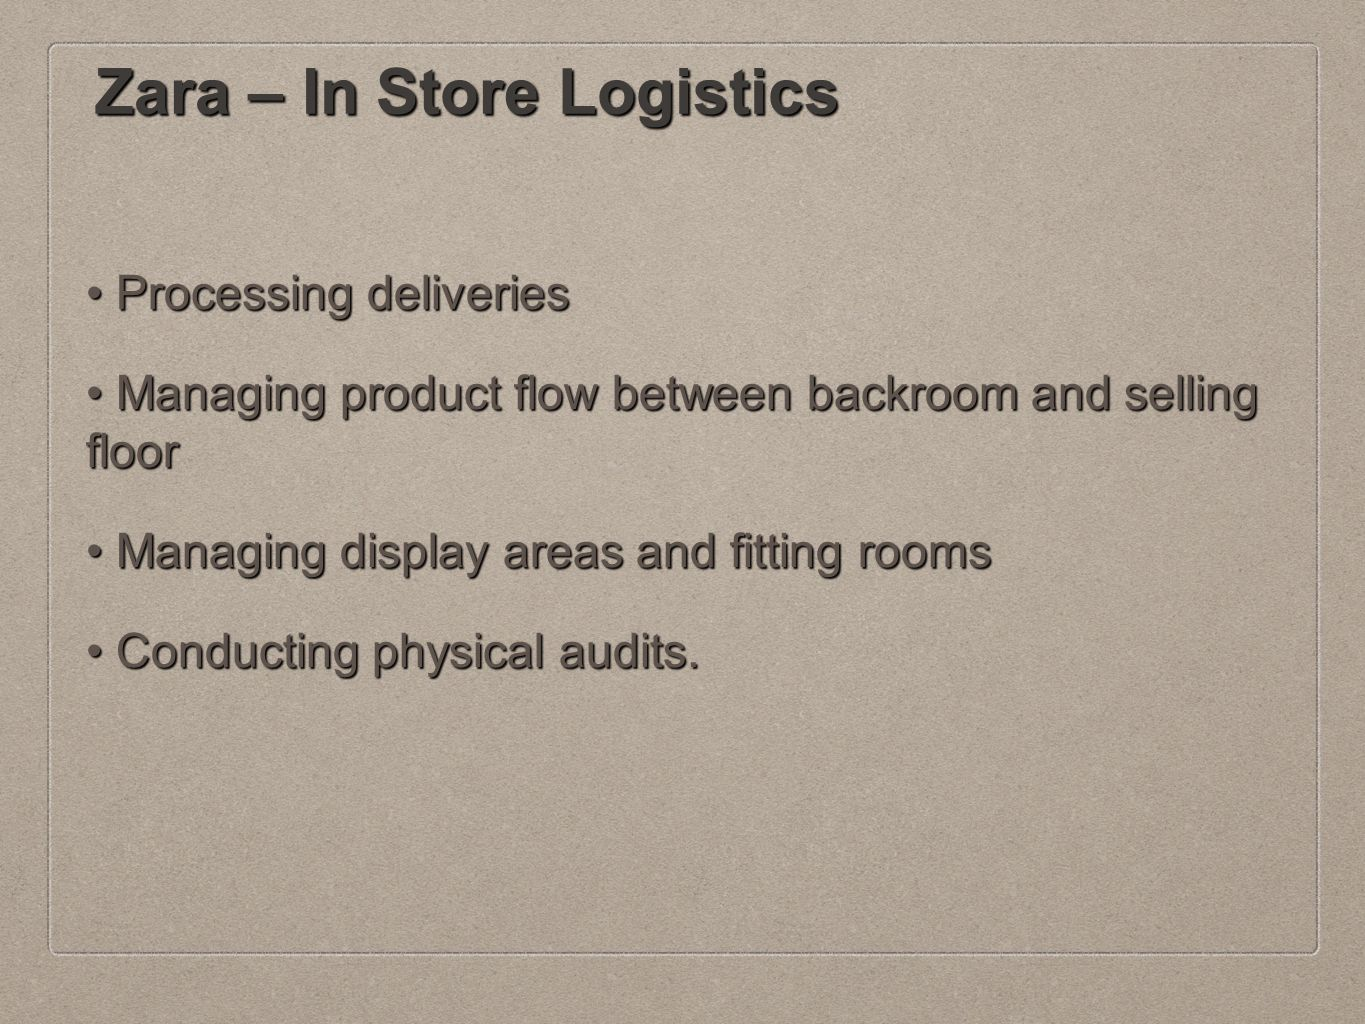 zara logistics The strategic management analysis of zara (relative to the case in developing countries) download recently the company announced that it invested 450 million in commercials as well as logistics area (inditex, inditex's net sales.